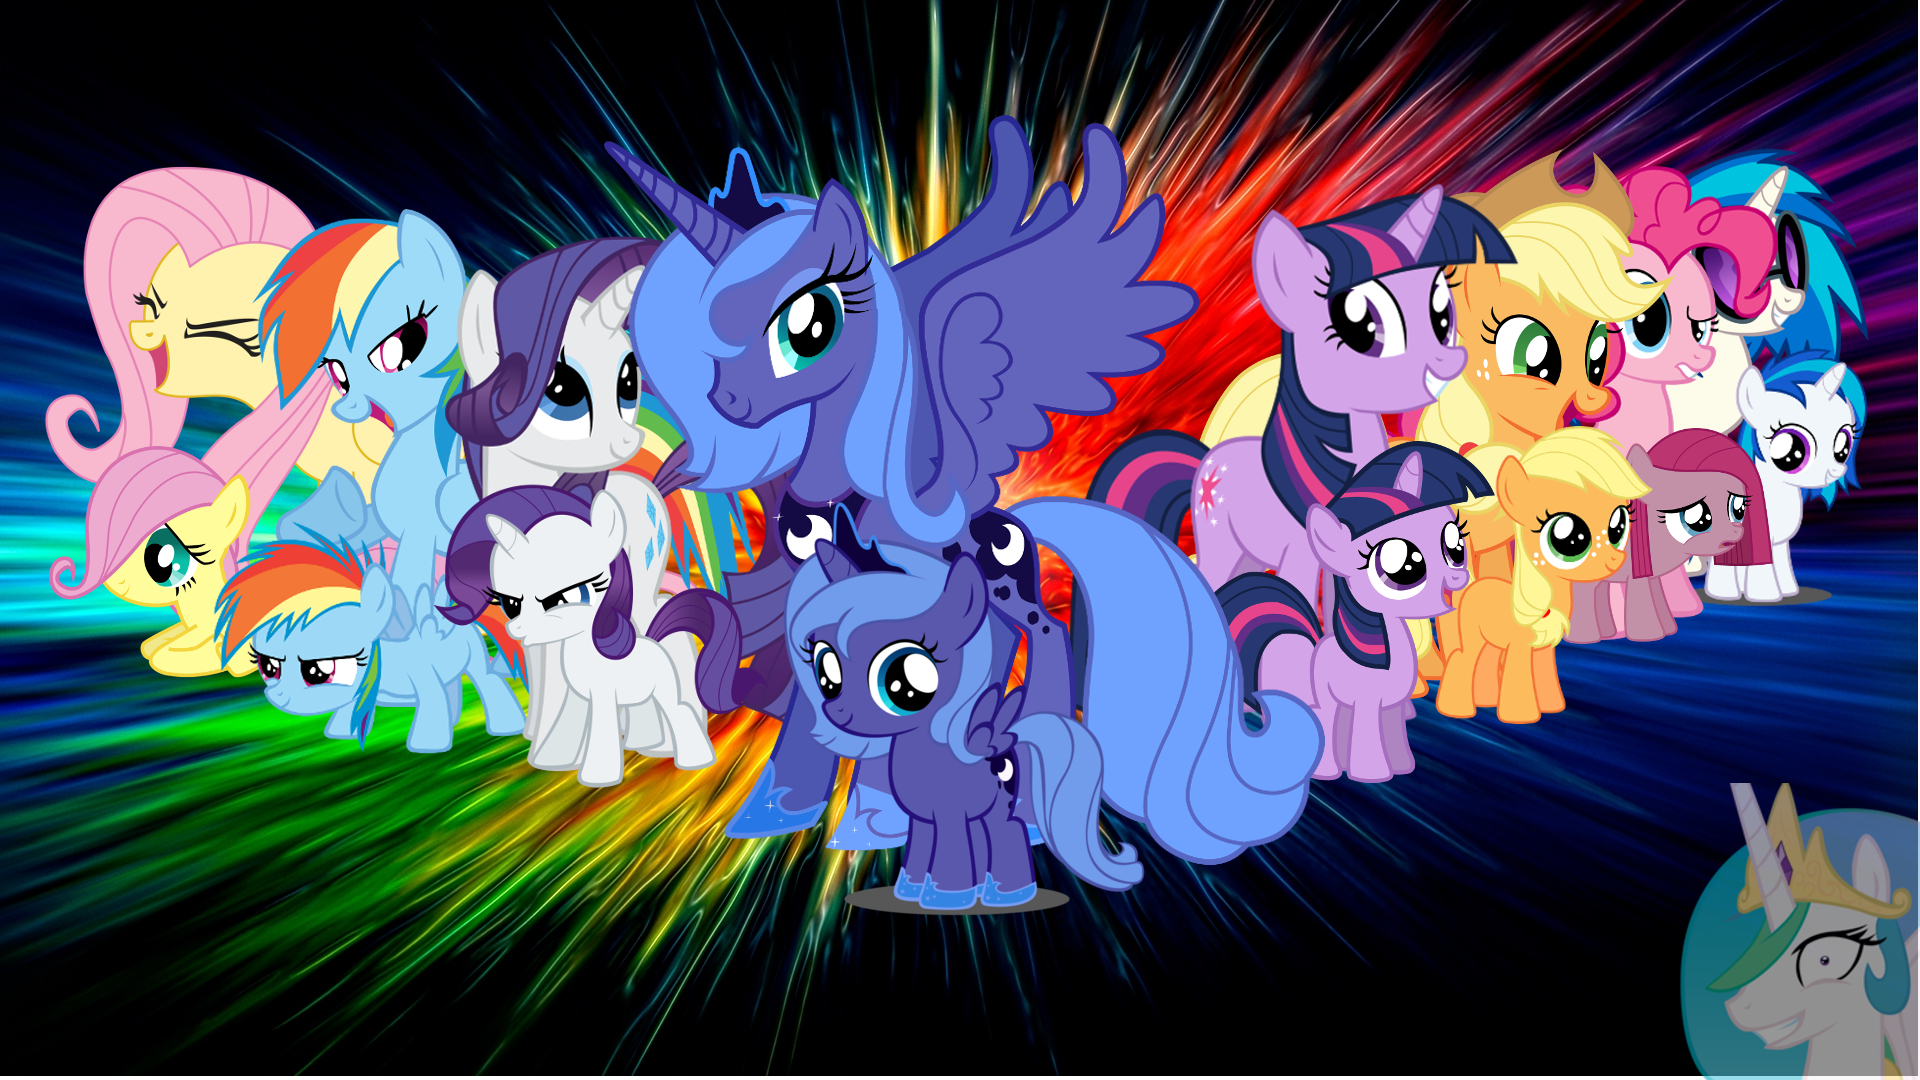 Beautiful My Little Pony Wallpaper